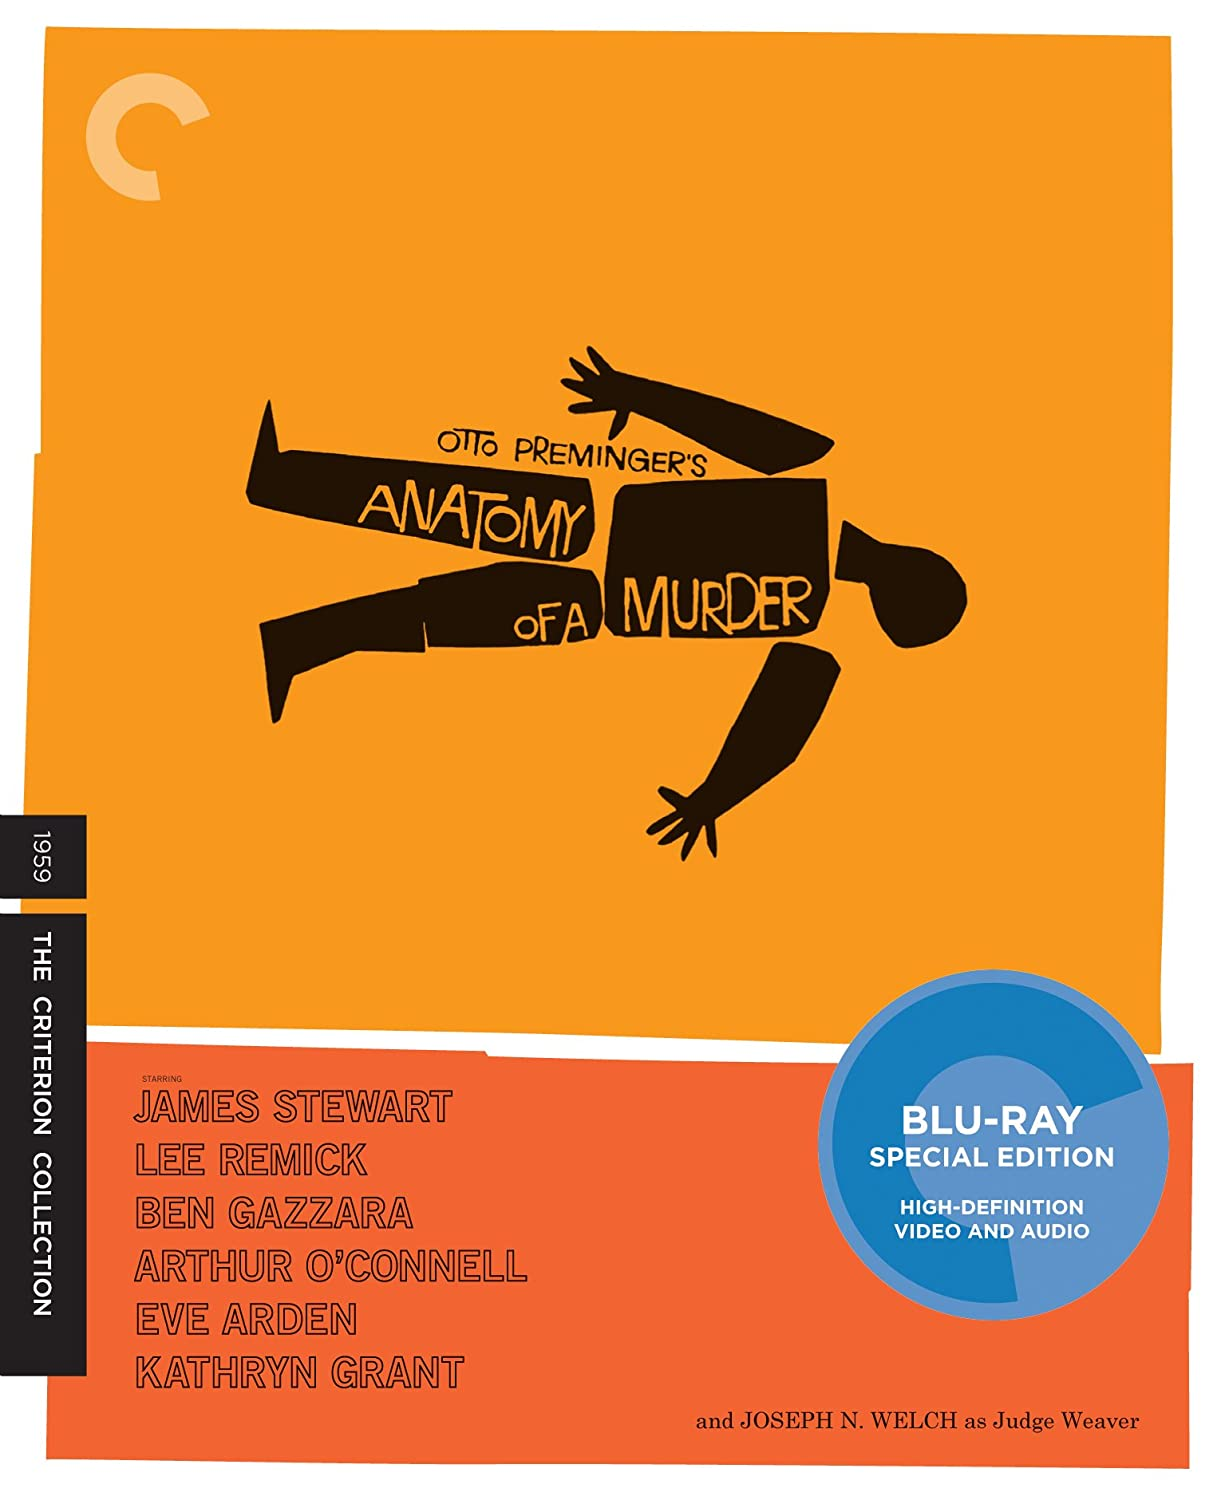 Amazon.com: Anatomy of a Murder (The Criterion Collection) [Blu-ray ...